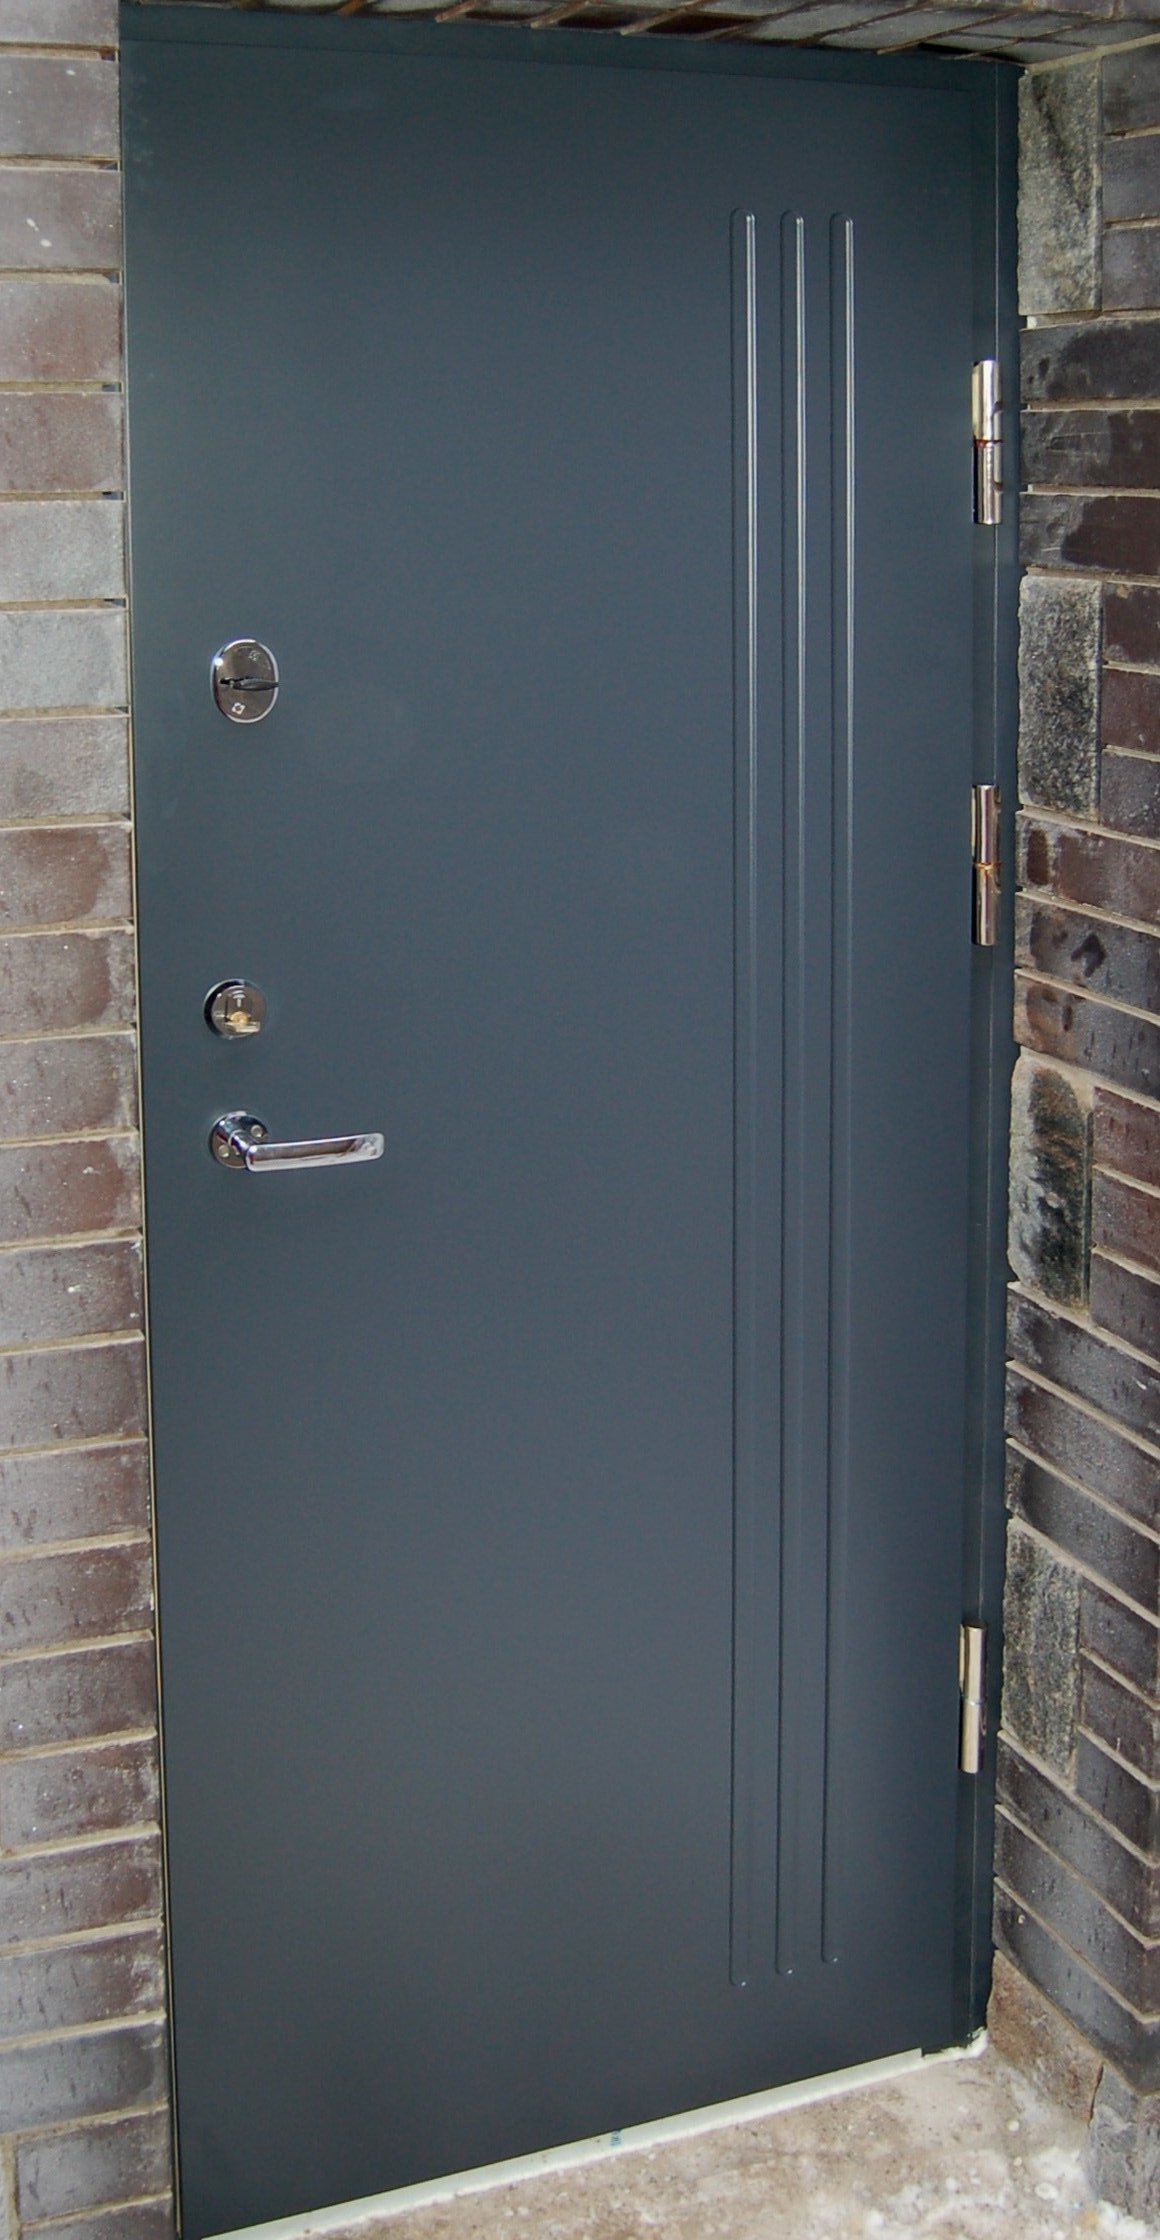 Steel Security Doors : Metal doors advertisement